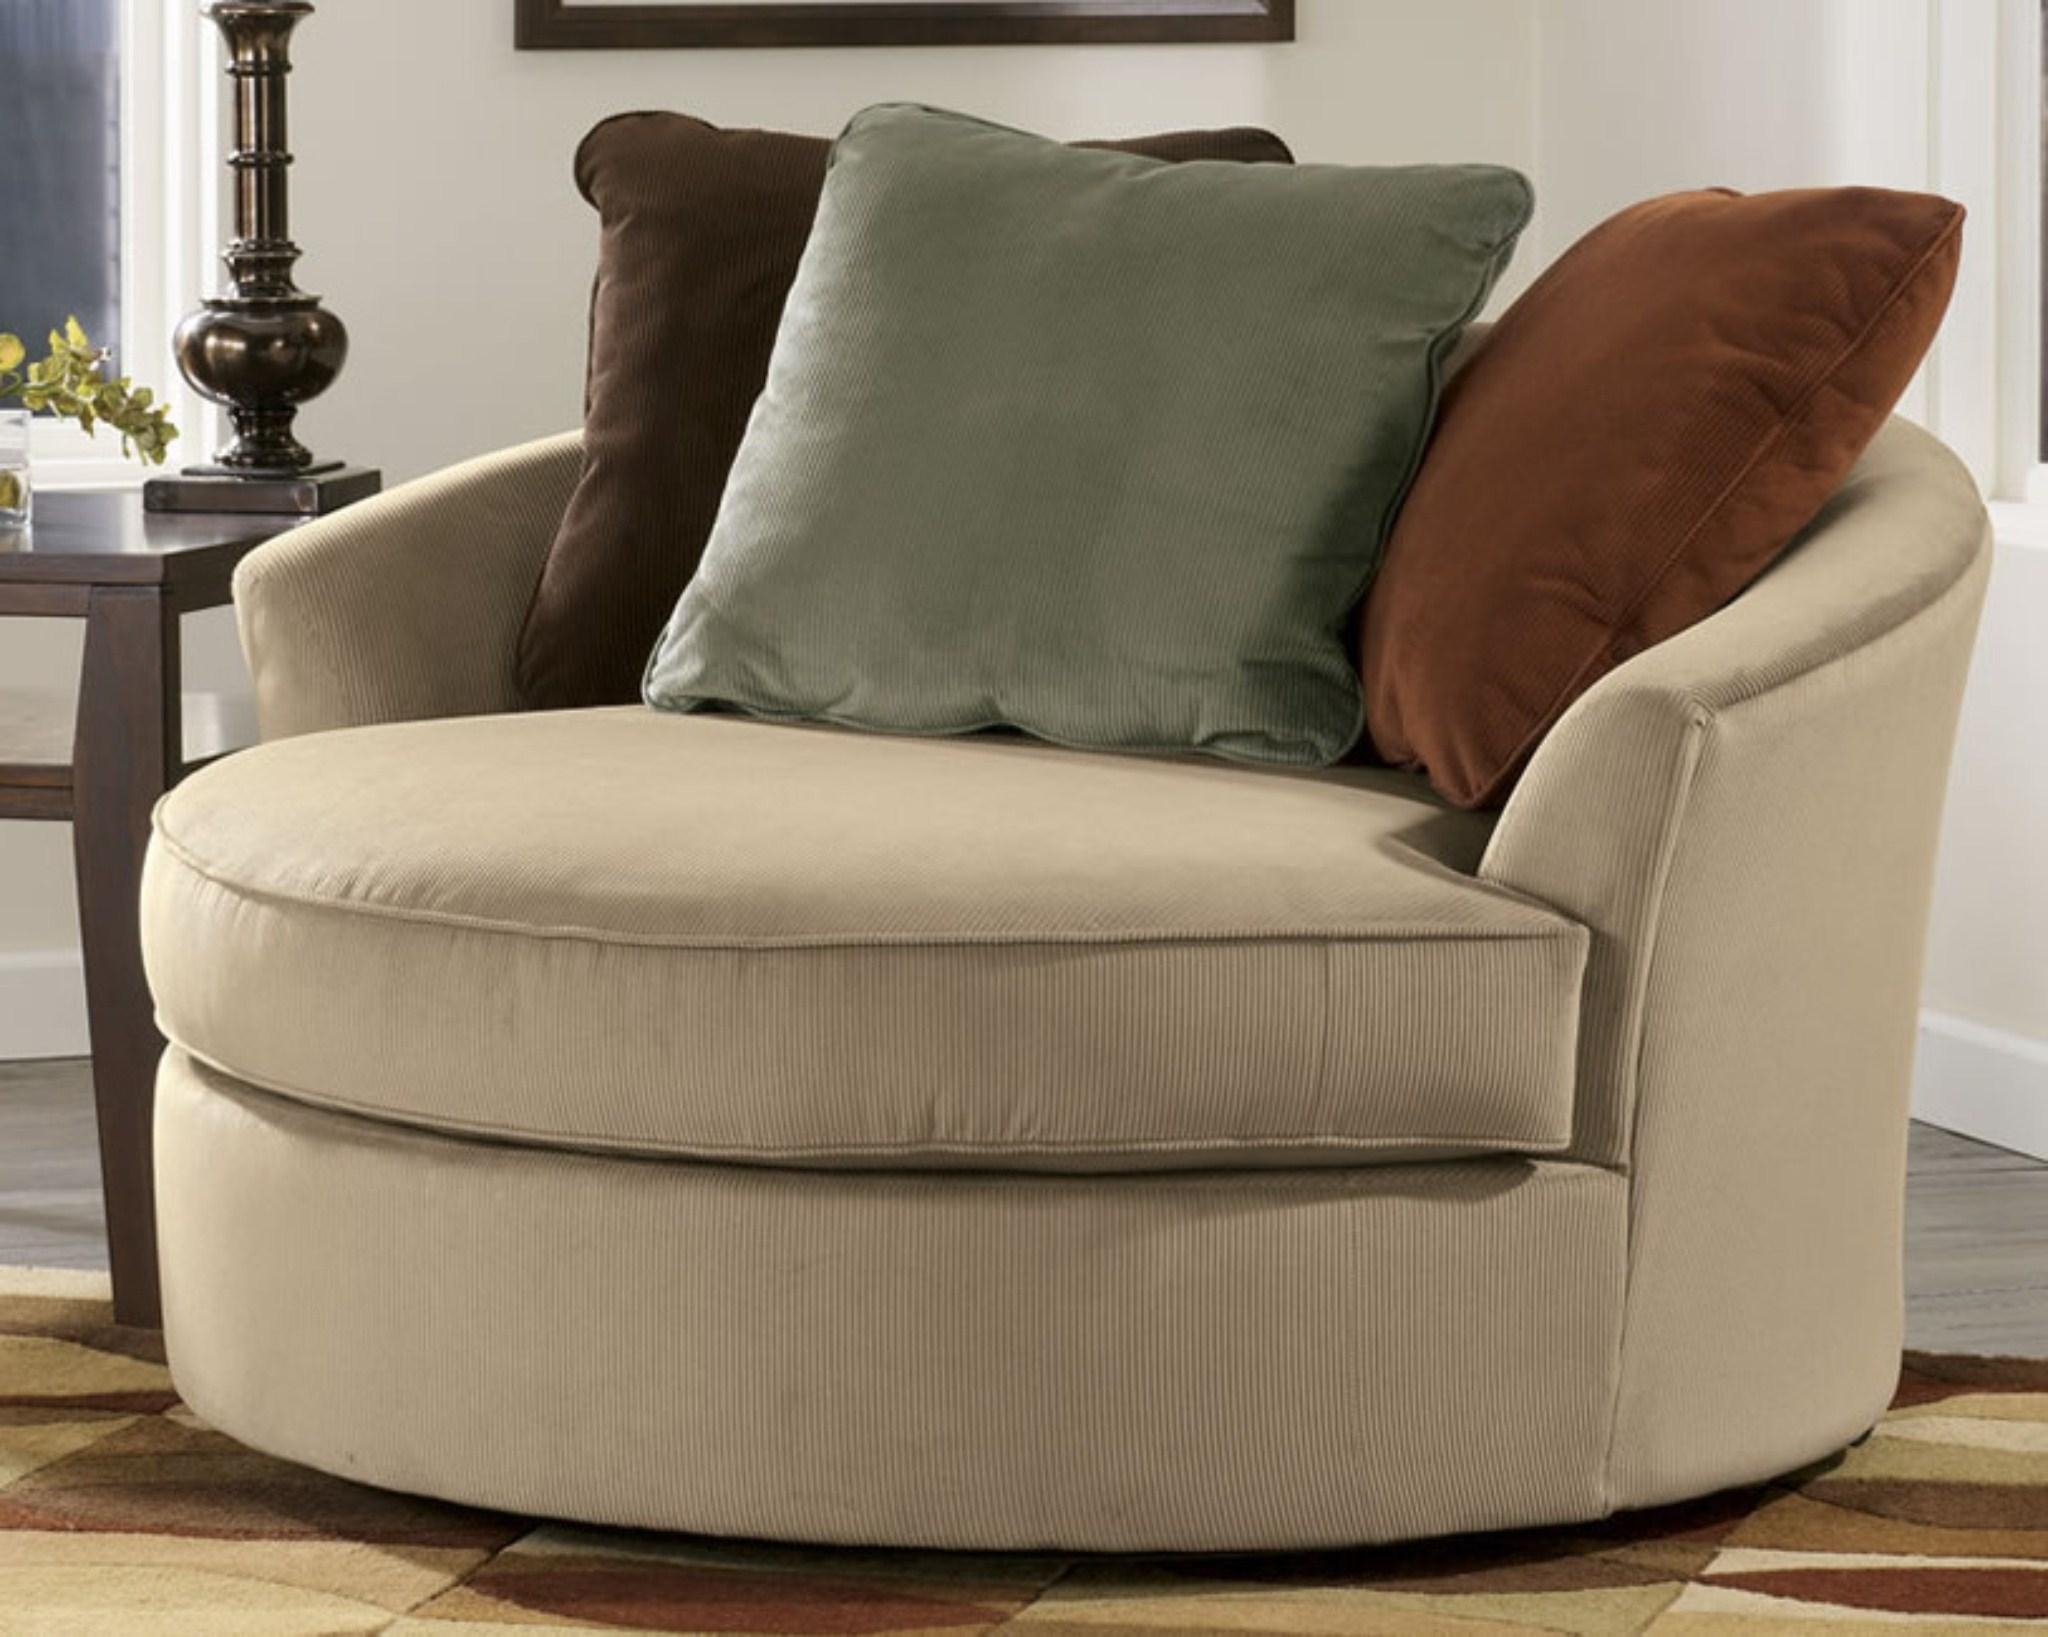 Round Swivel Sofa Chair – Leather Sectional Sofa For Sofa With Swivel Chair (View 9 of 20)